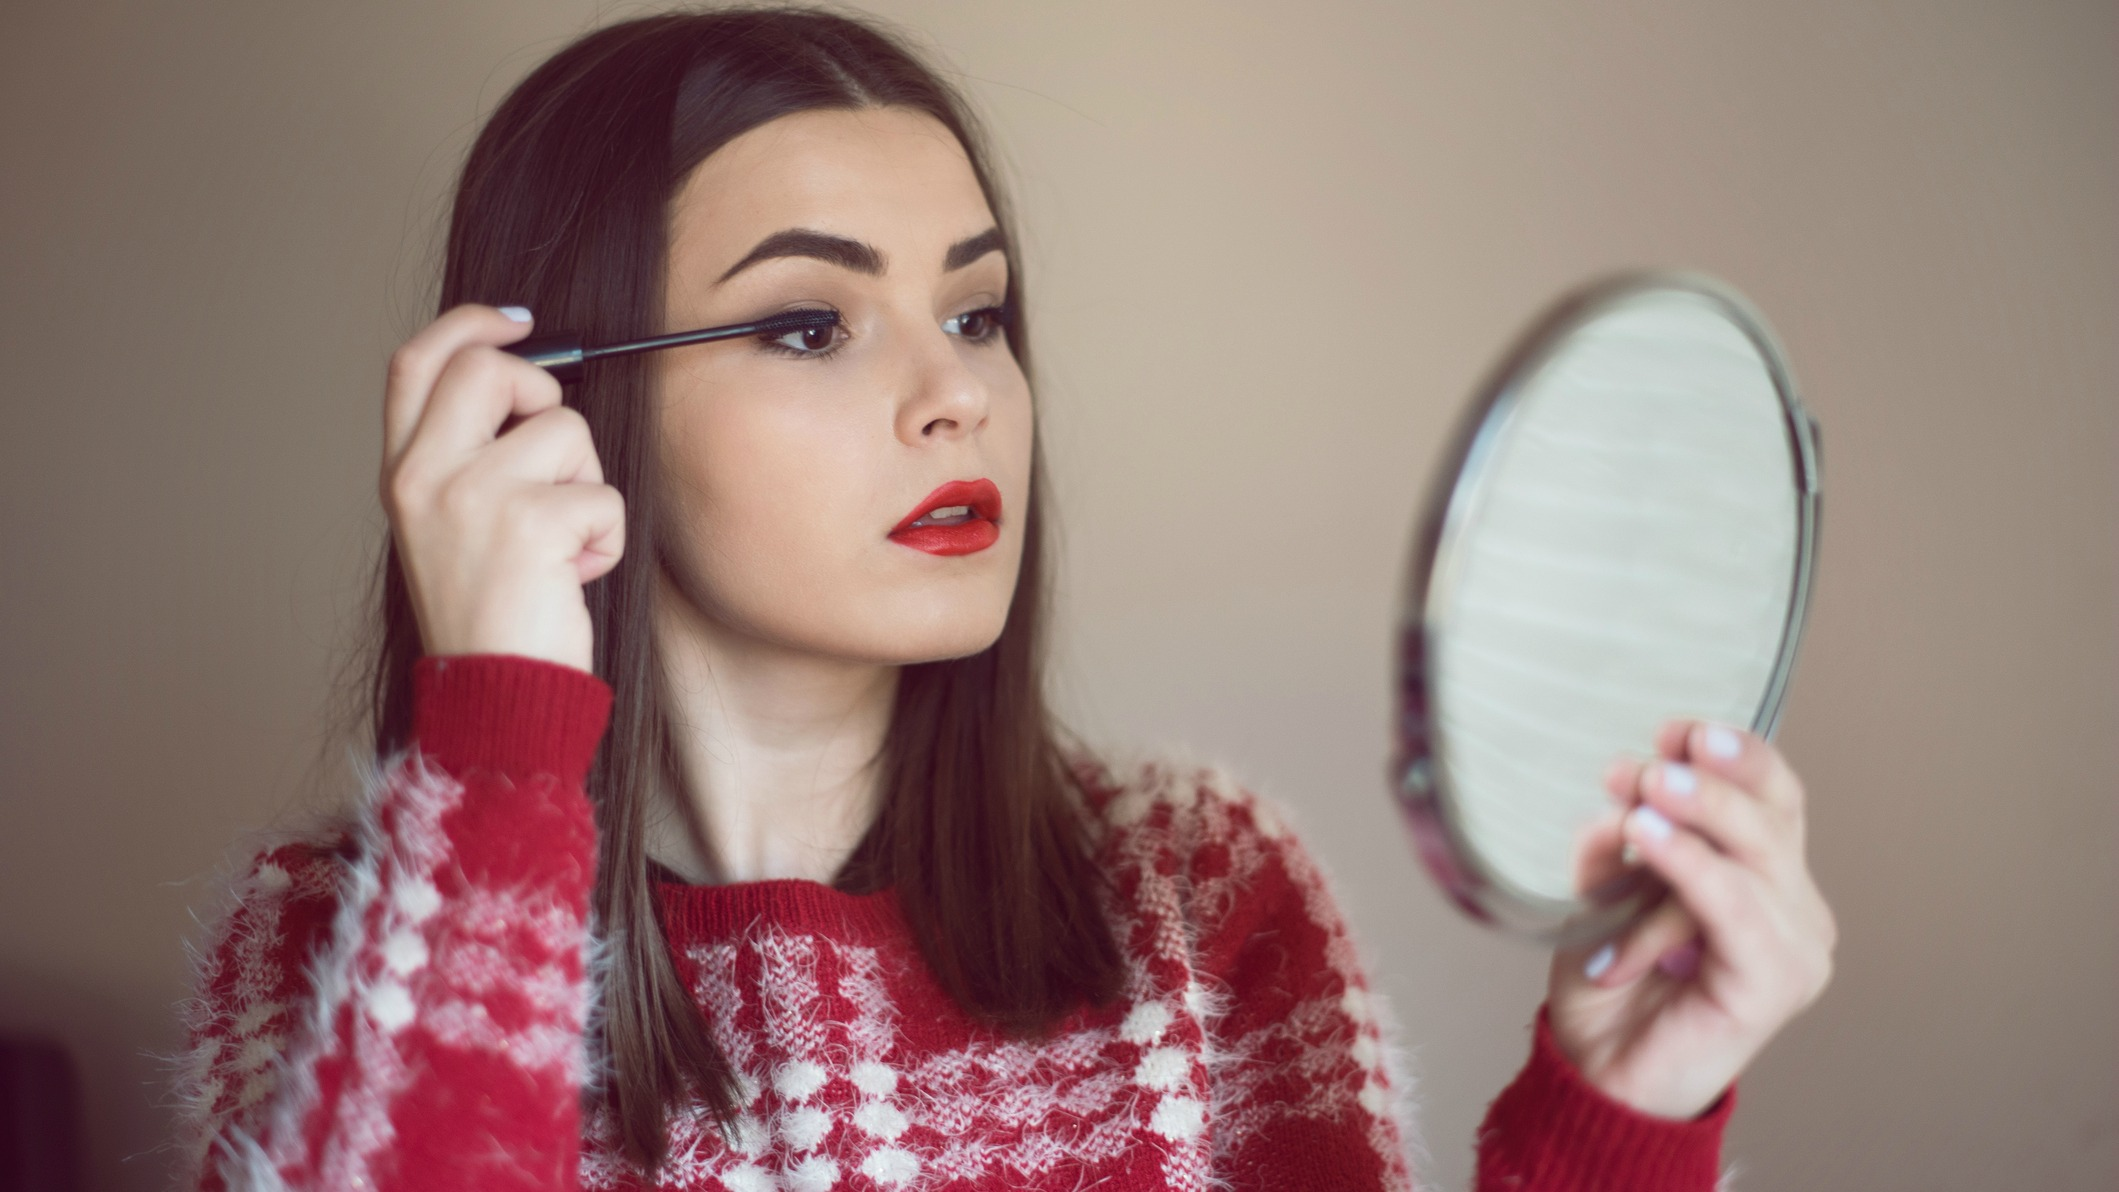 10 Things No One Ever Tells You About Mascara